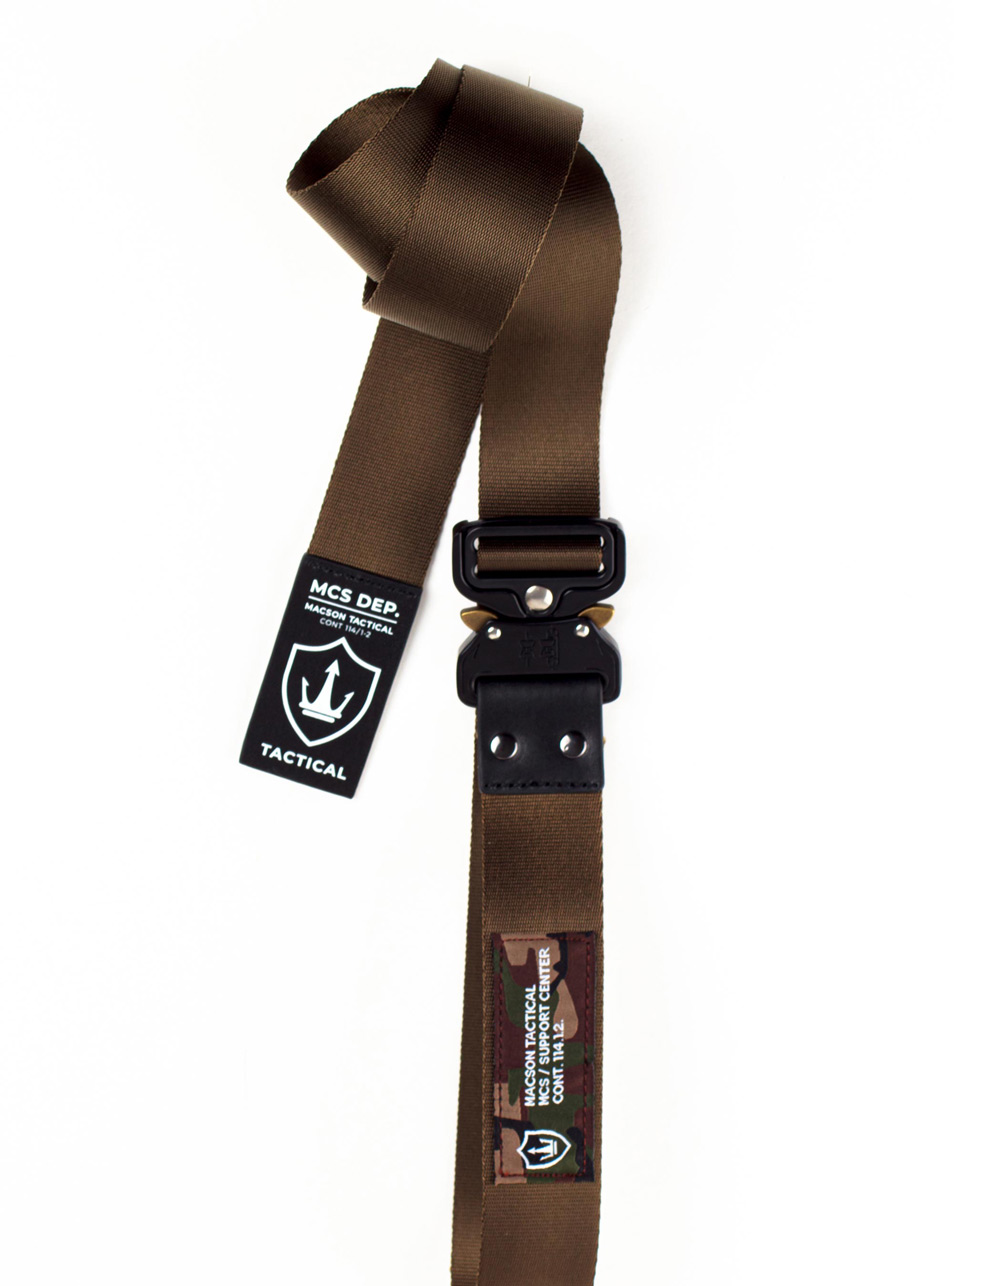 Kakhy tactical carabiner belt - Backside